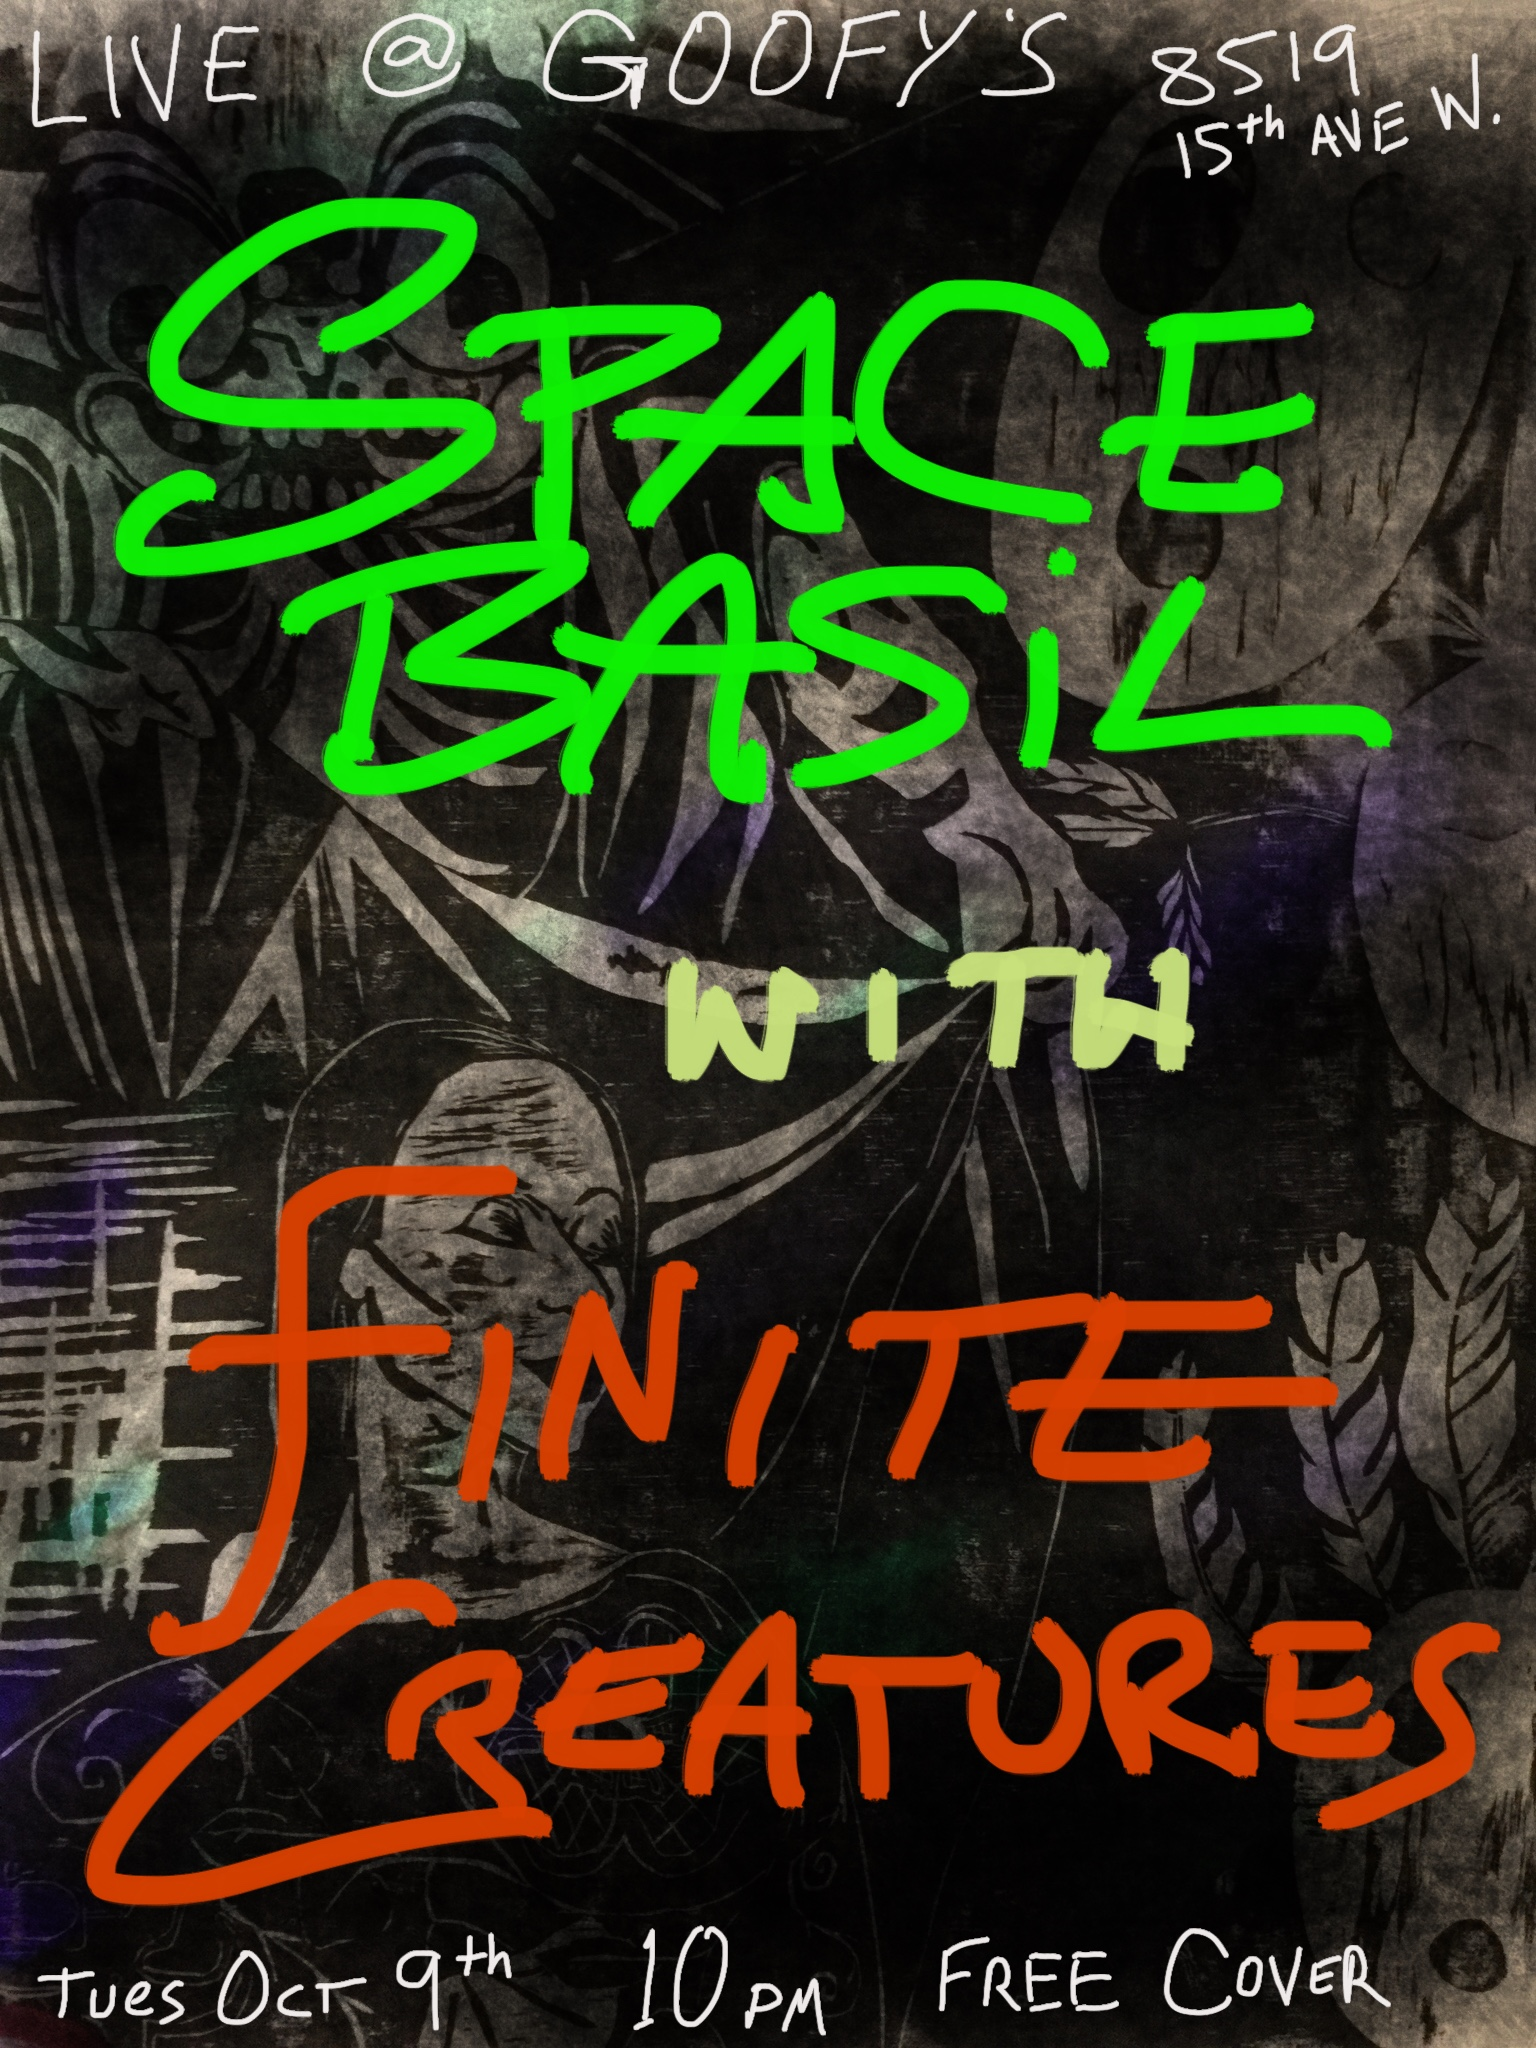 finite creatures concert poster